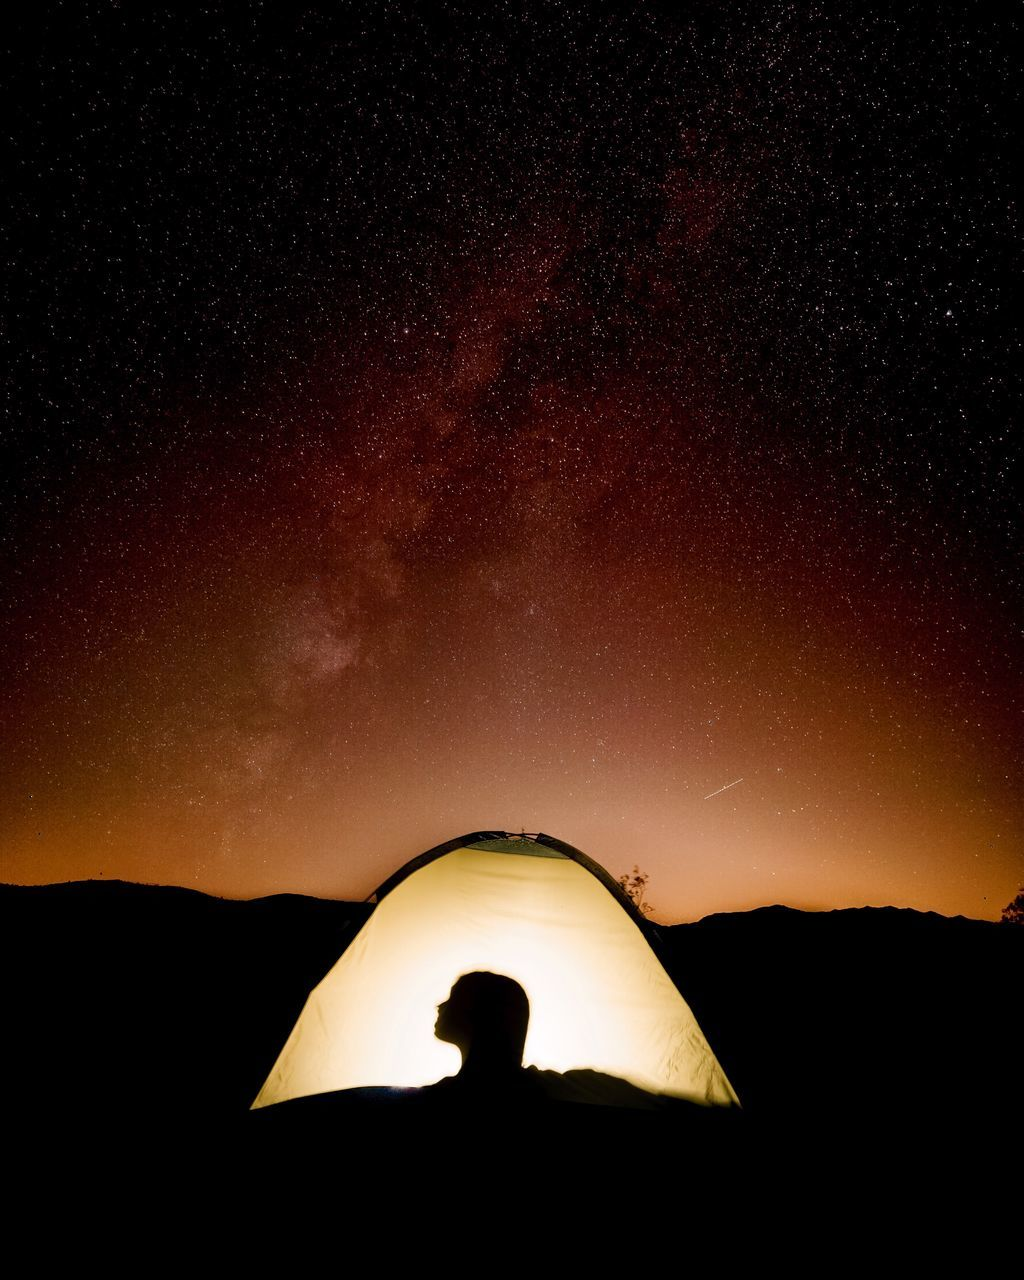 Shadow Of Person In Illuminated Tent Against Star Field At Night